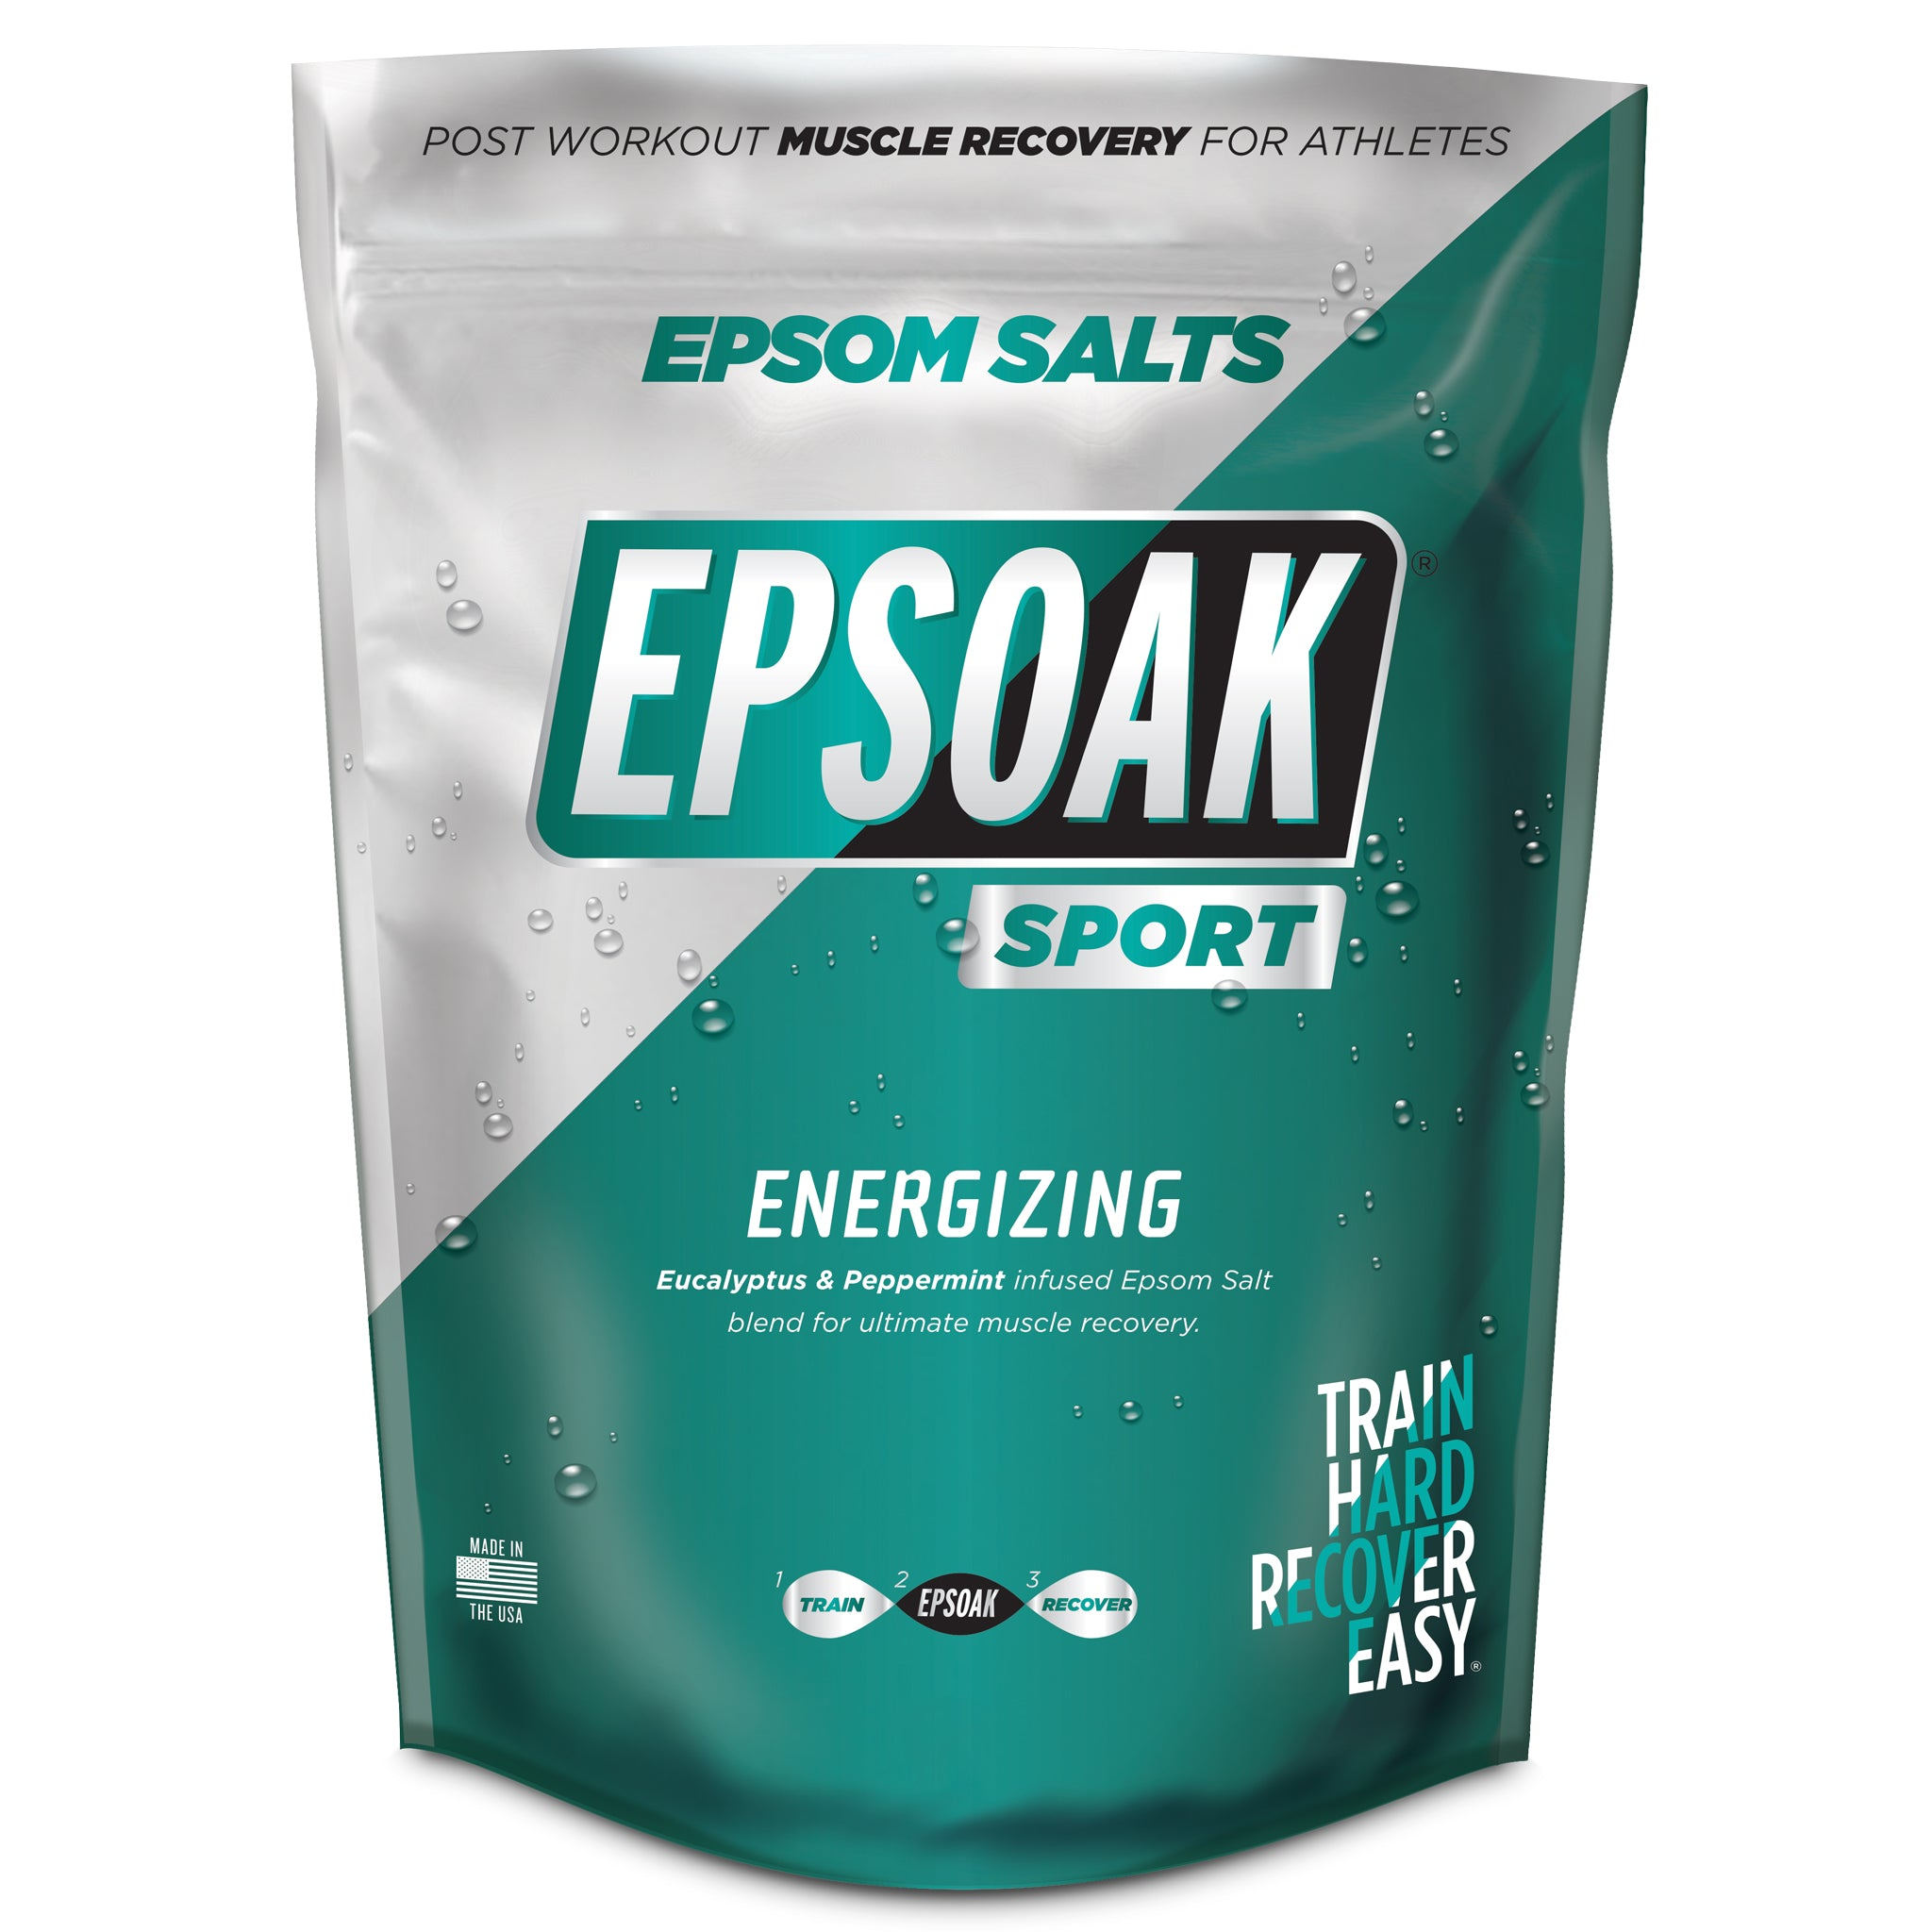 Sport - Energizing 5 lbs.